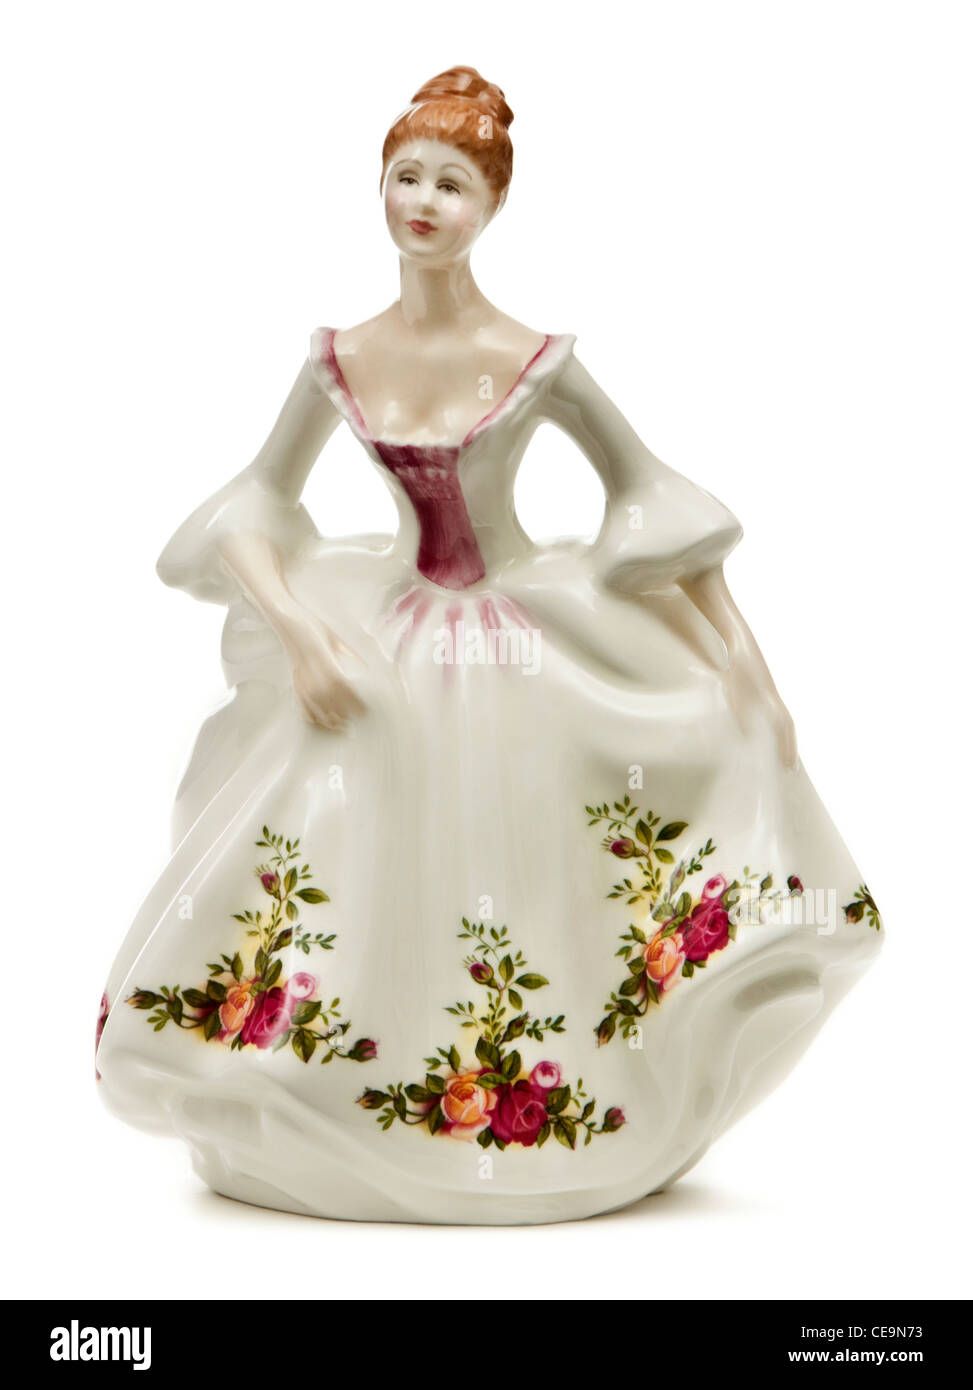 Royal Doulton 'Country Rose' (HN3221) porcelain figure from 1988. Modelled by Peggy Davies. Made in England. - Stock Image